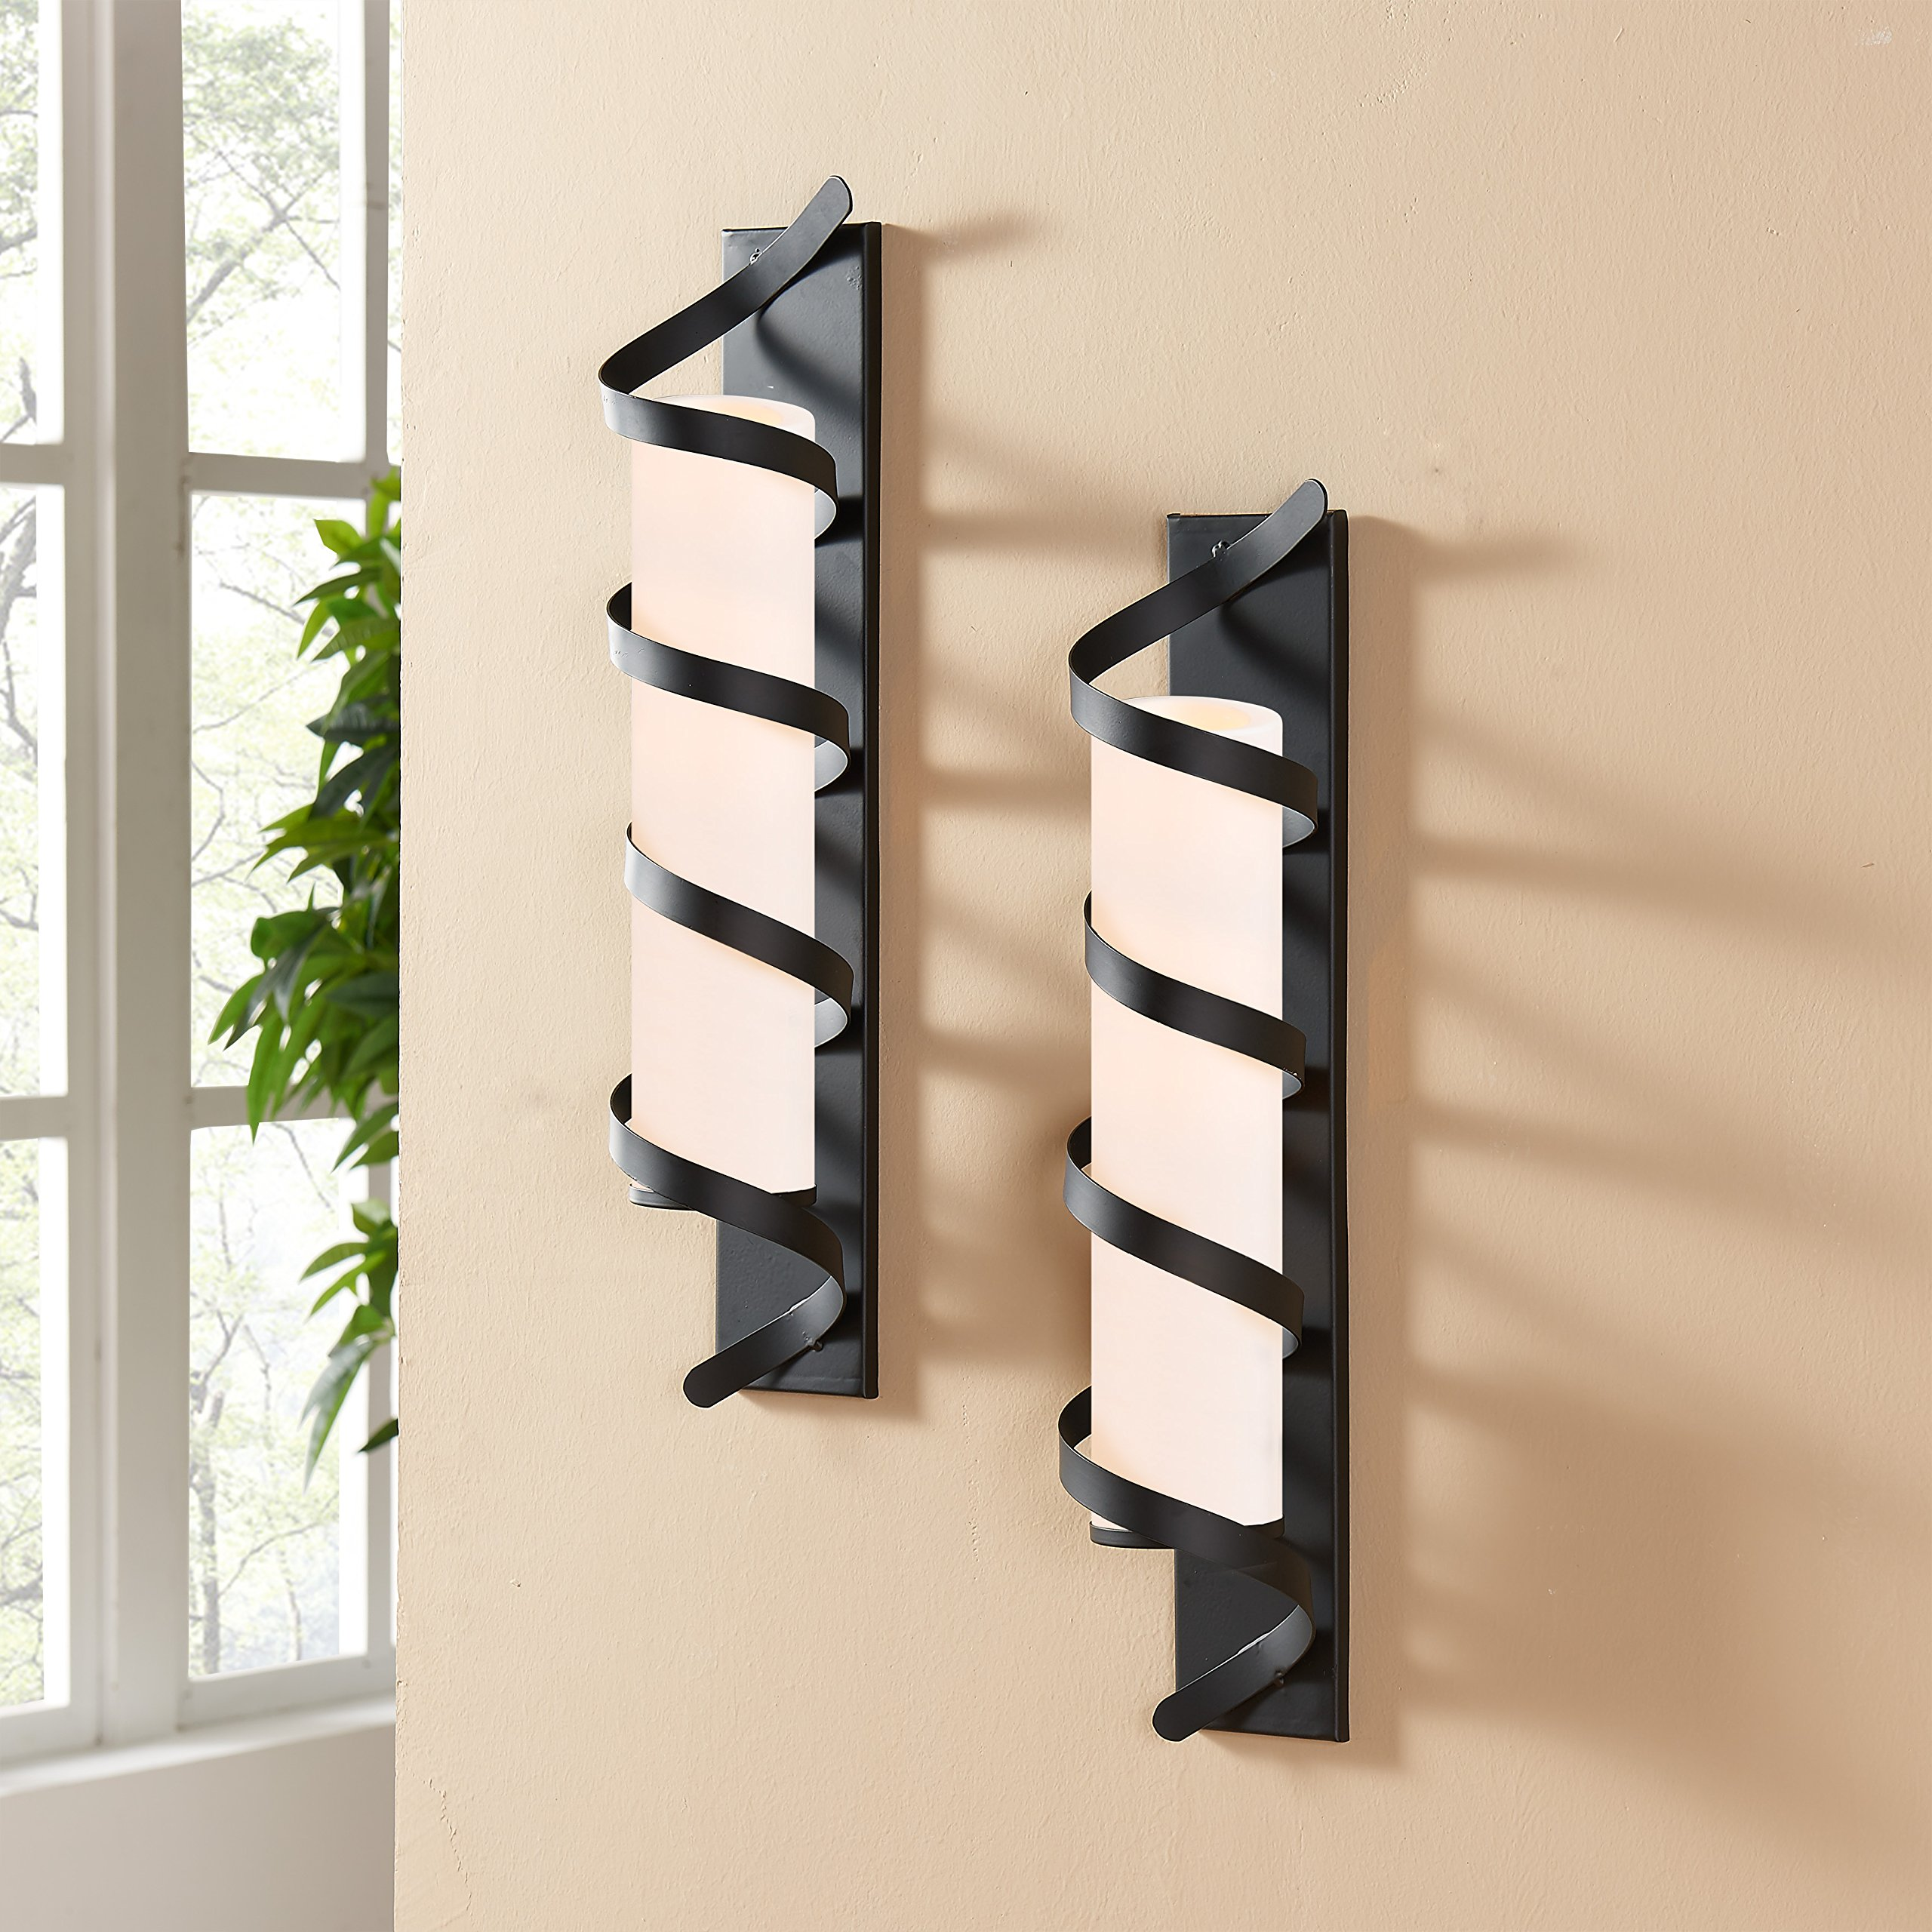 Danya B Wrap Around Metal Candle Sconces - Set of 2 - Easy to Hang - Contemporary Home Décor